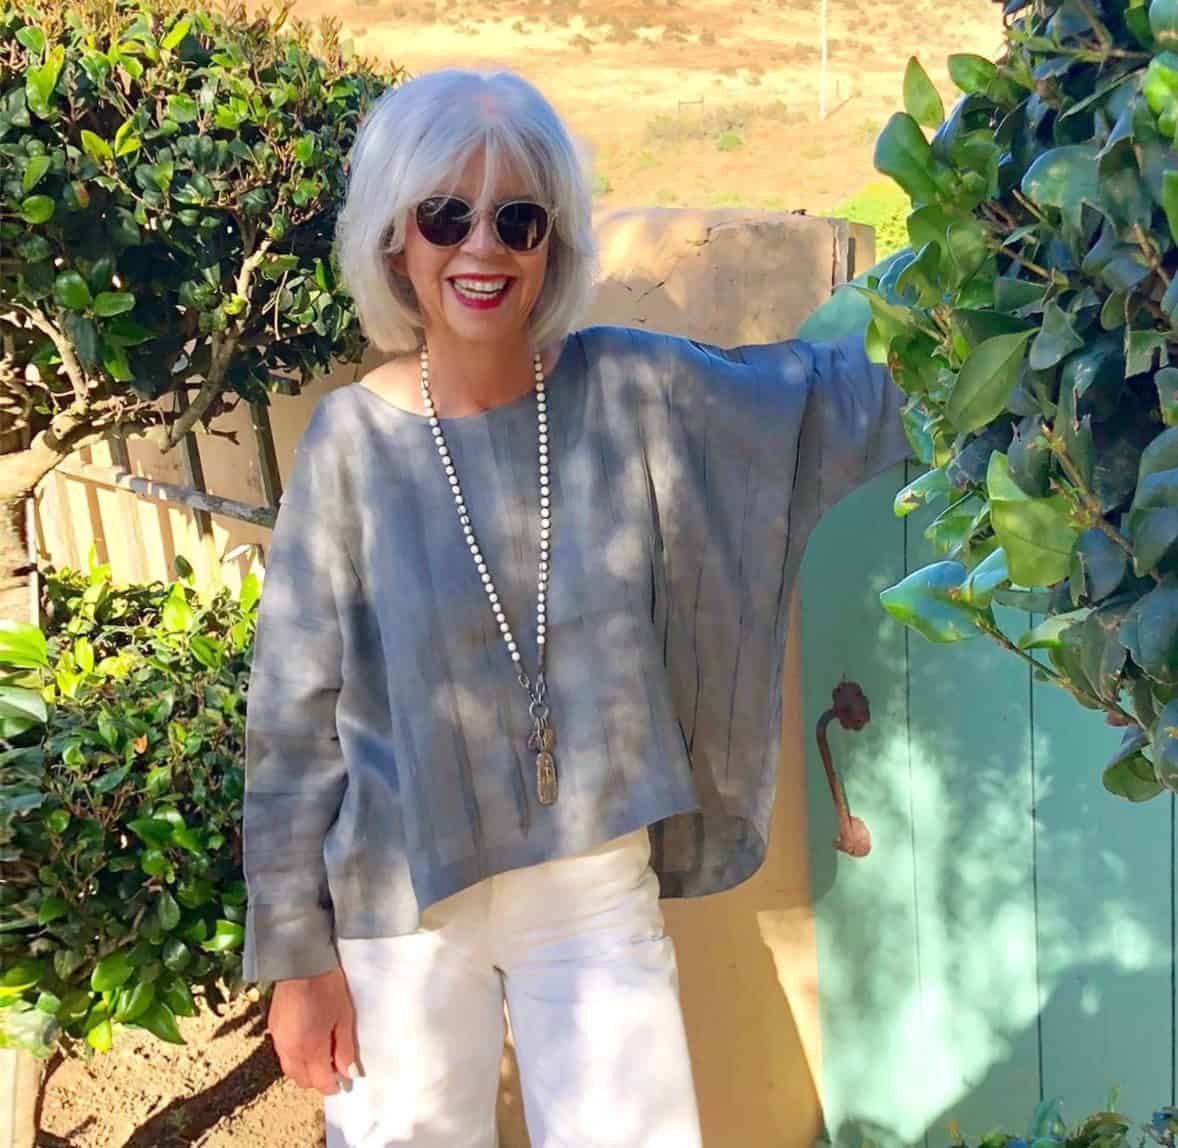 Cindy Witmer Designs In 2019: Ageless Style-Ali MacGraw Aging Gracefully